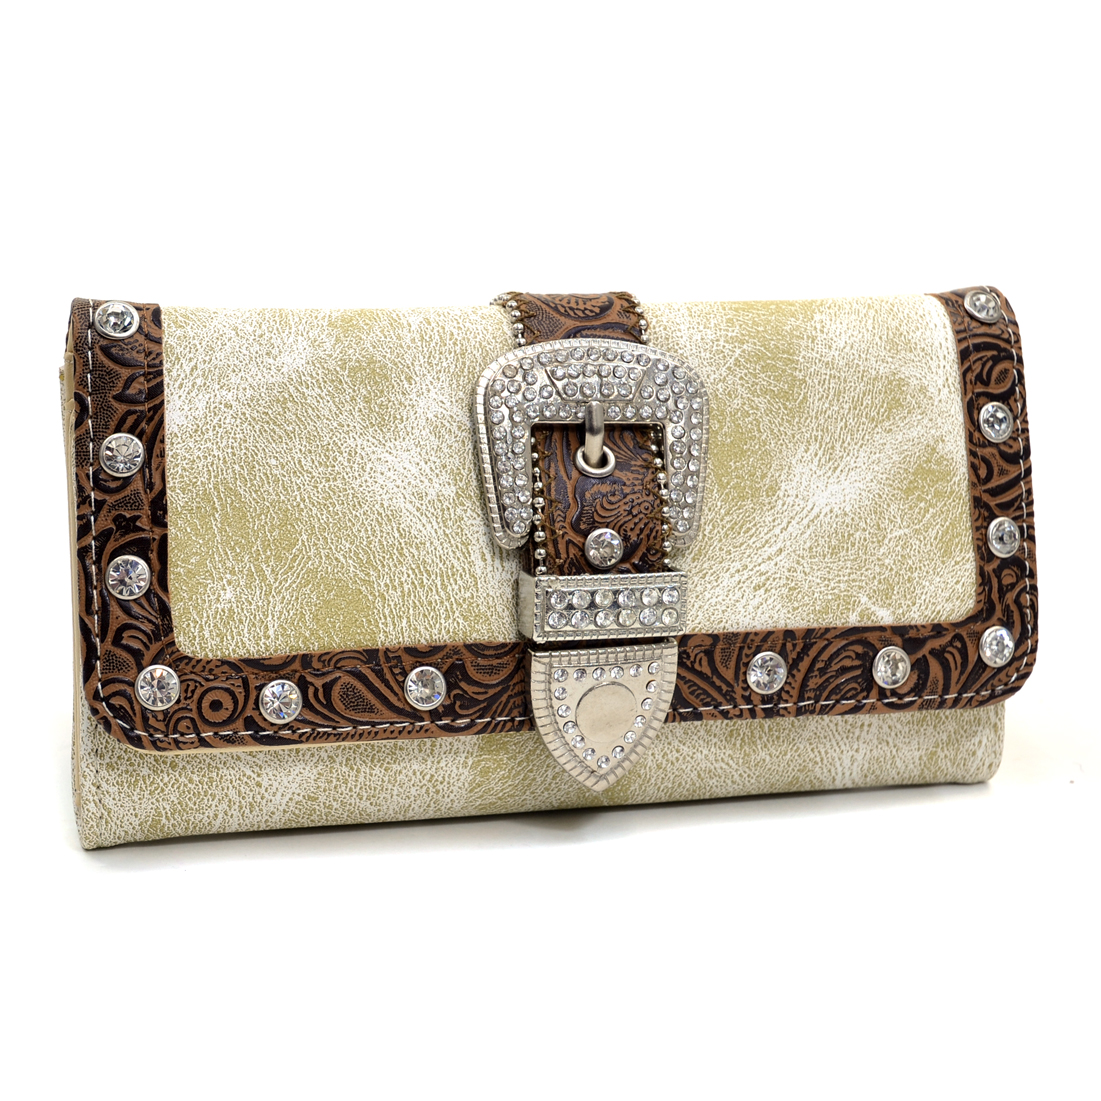 Rhinestone Embellished Buckle Western Wallet With Floral Texture Trim